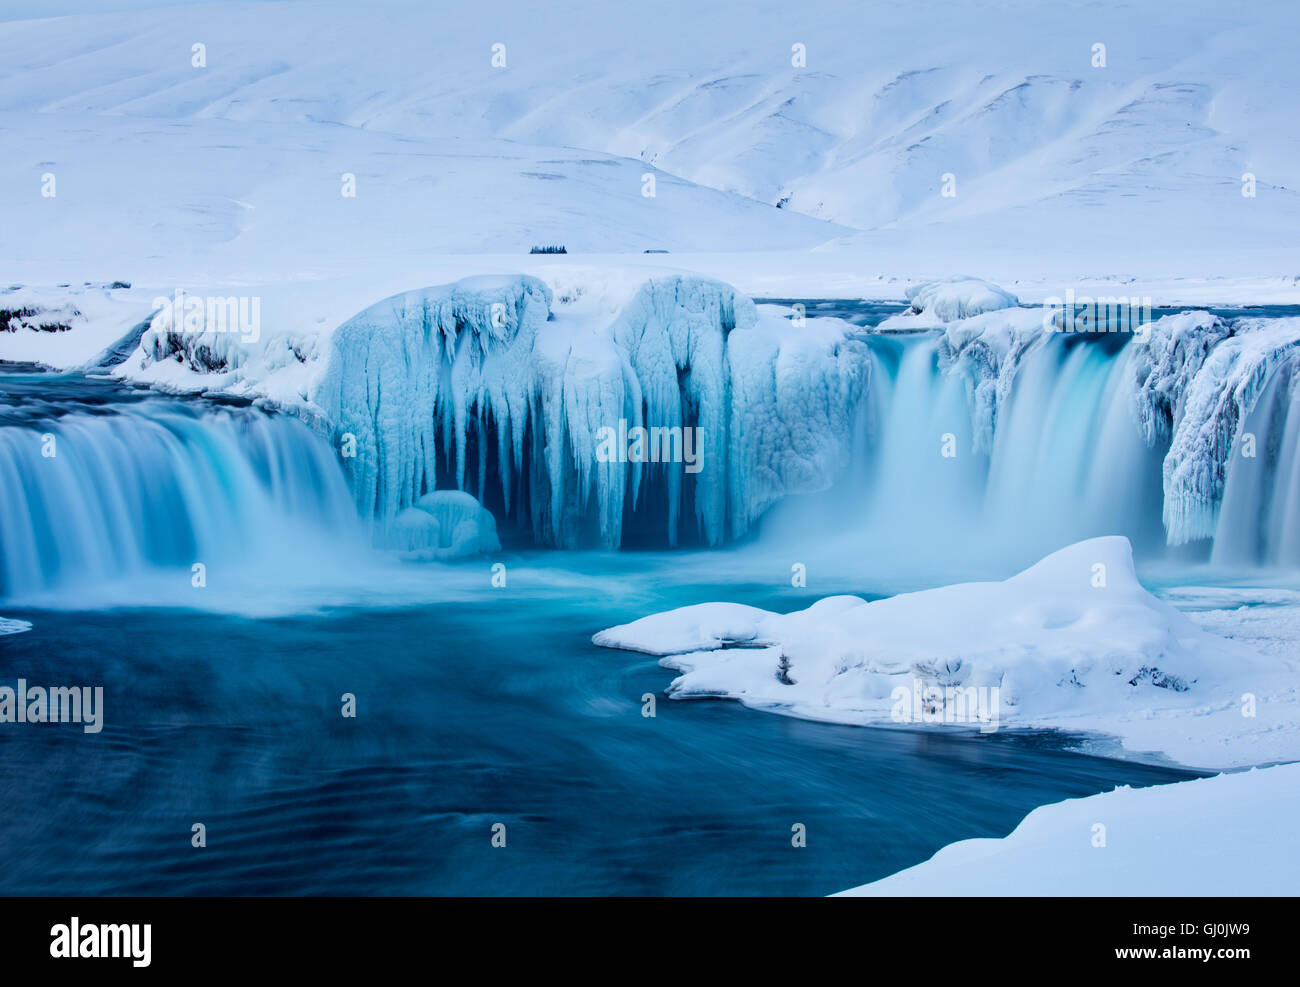 Goðafoss in winter, Bárðardalur district of North-Central Iceland - Stock Image